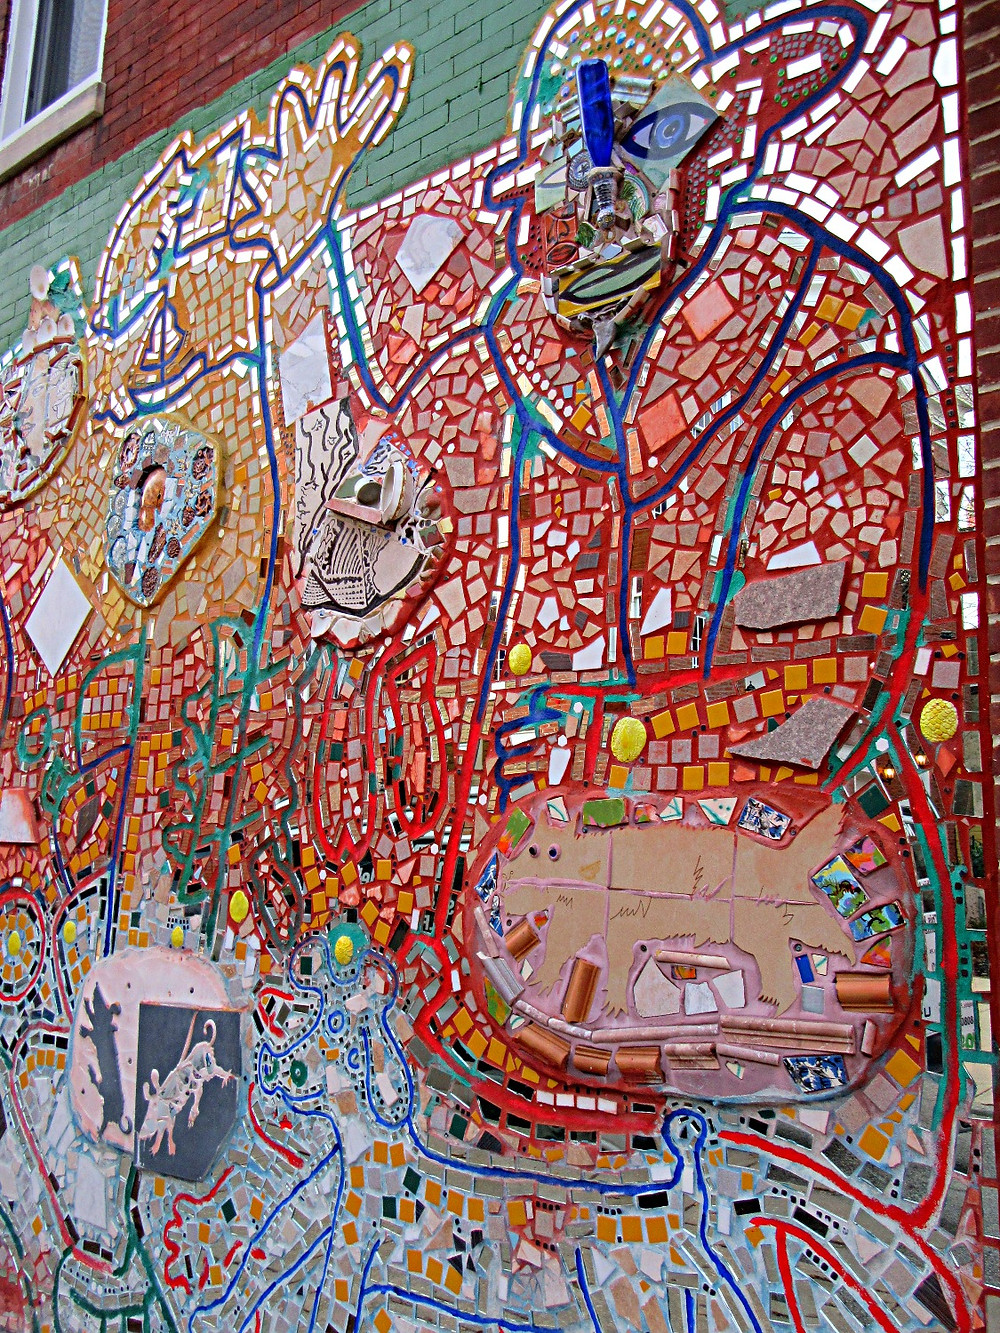 Traveleidoscope:  South Street mosaic murals, Philadelphia